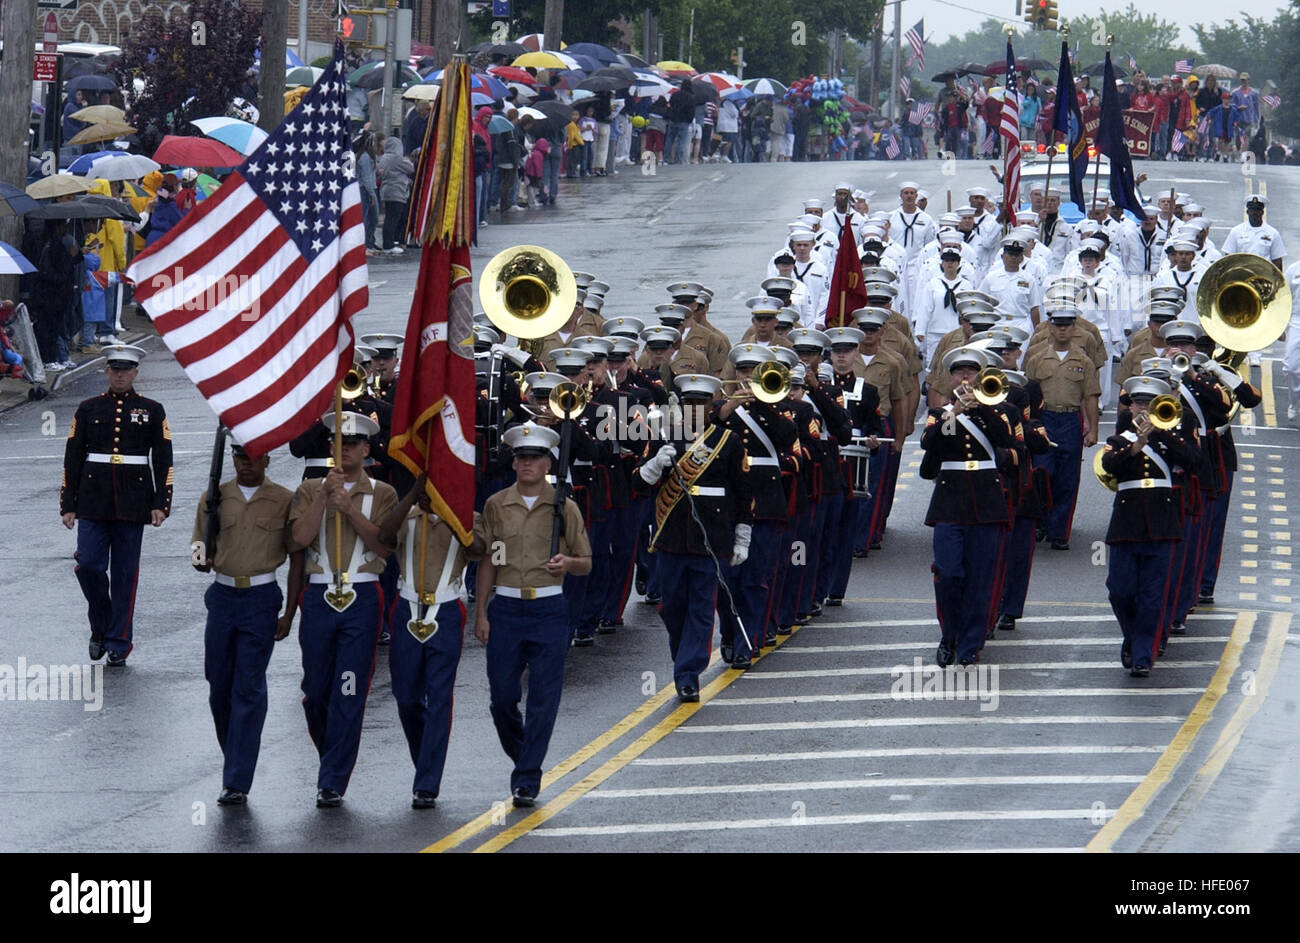 040531-N-6371Q-223 New York City, N.Y. (May 31, 2004) - Marines and Sailors march in the Little Neck Memorial Day Stock Photo